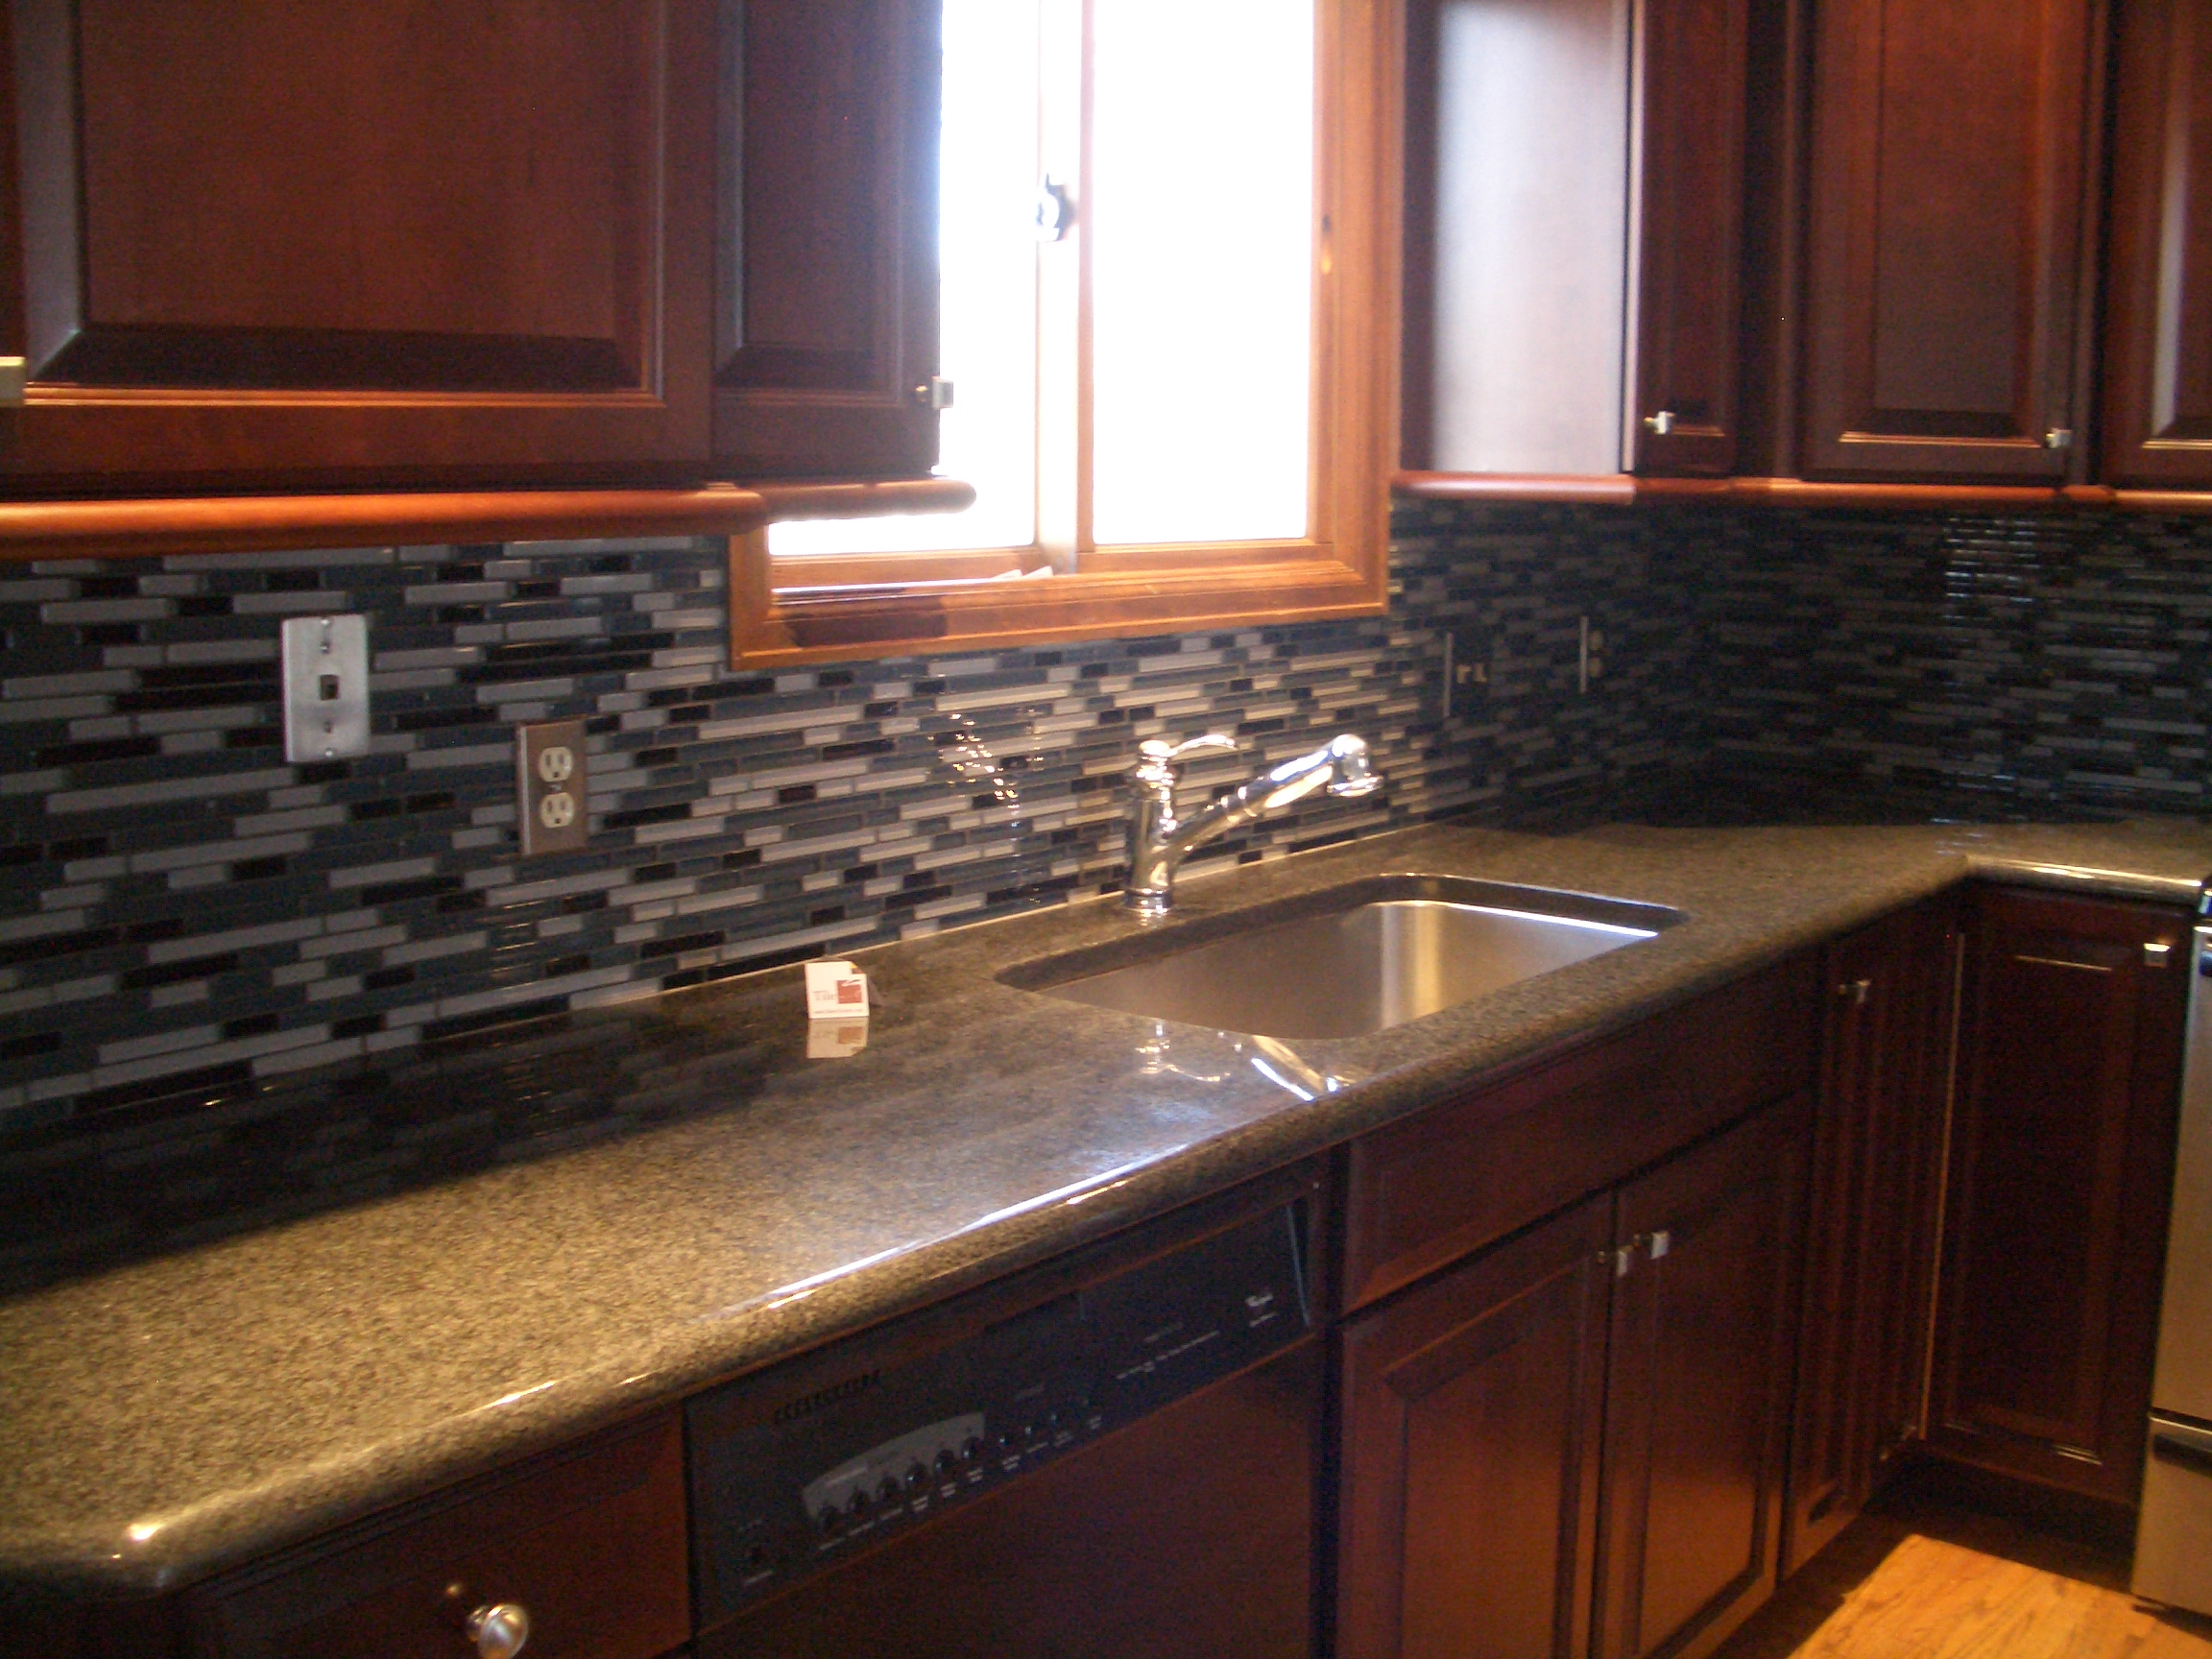 Kitchen Backsplash With Art Behind Sink Top Preferred Home Design